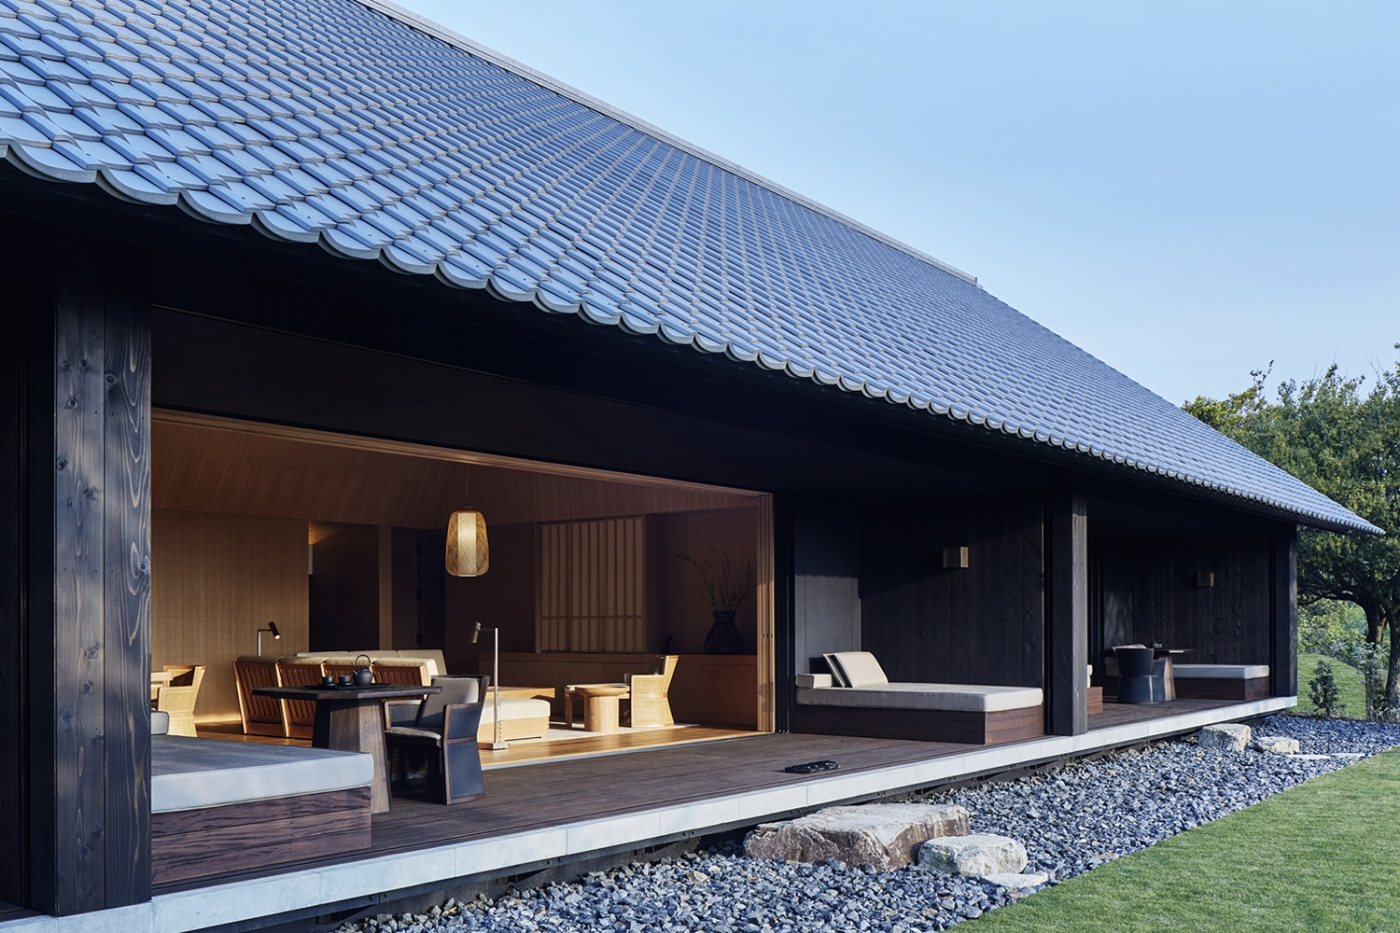 kerry hill Discover This Japanese Resort by Australian Architect Kerry Hill Amanemu Resort Japan by Kerry Hill Architects Yellowtrace 19 1400x933